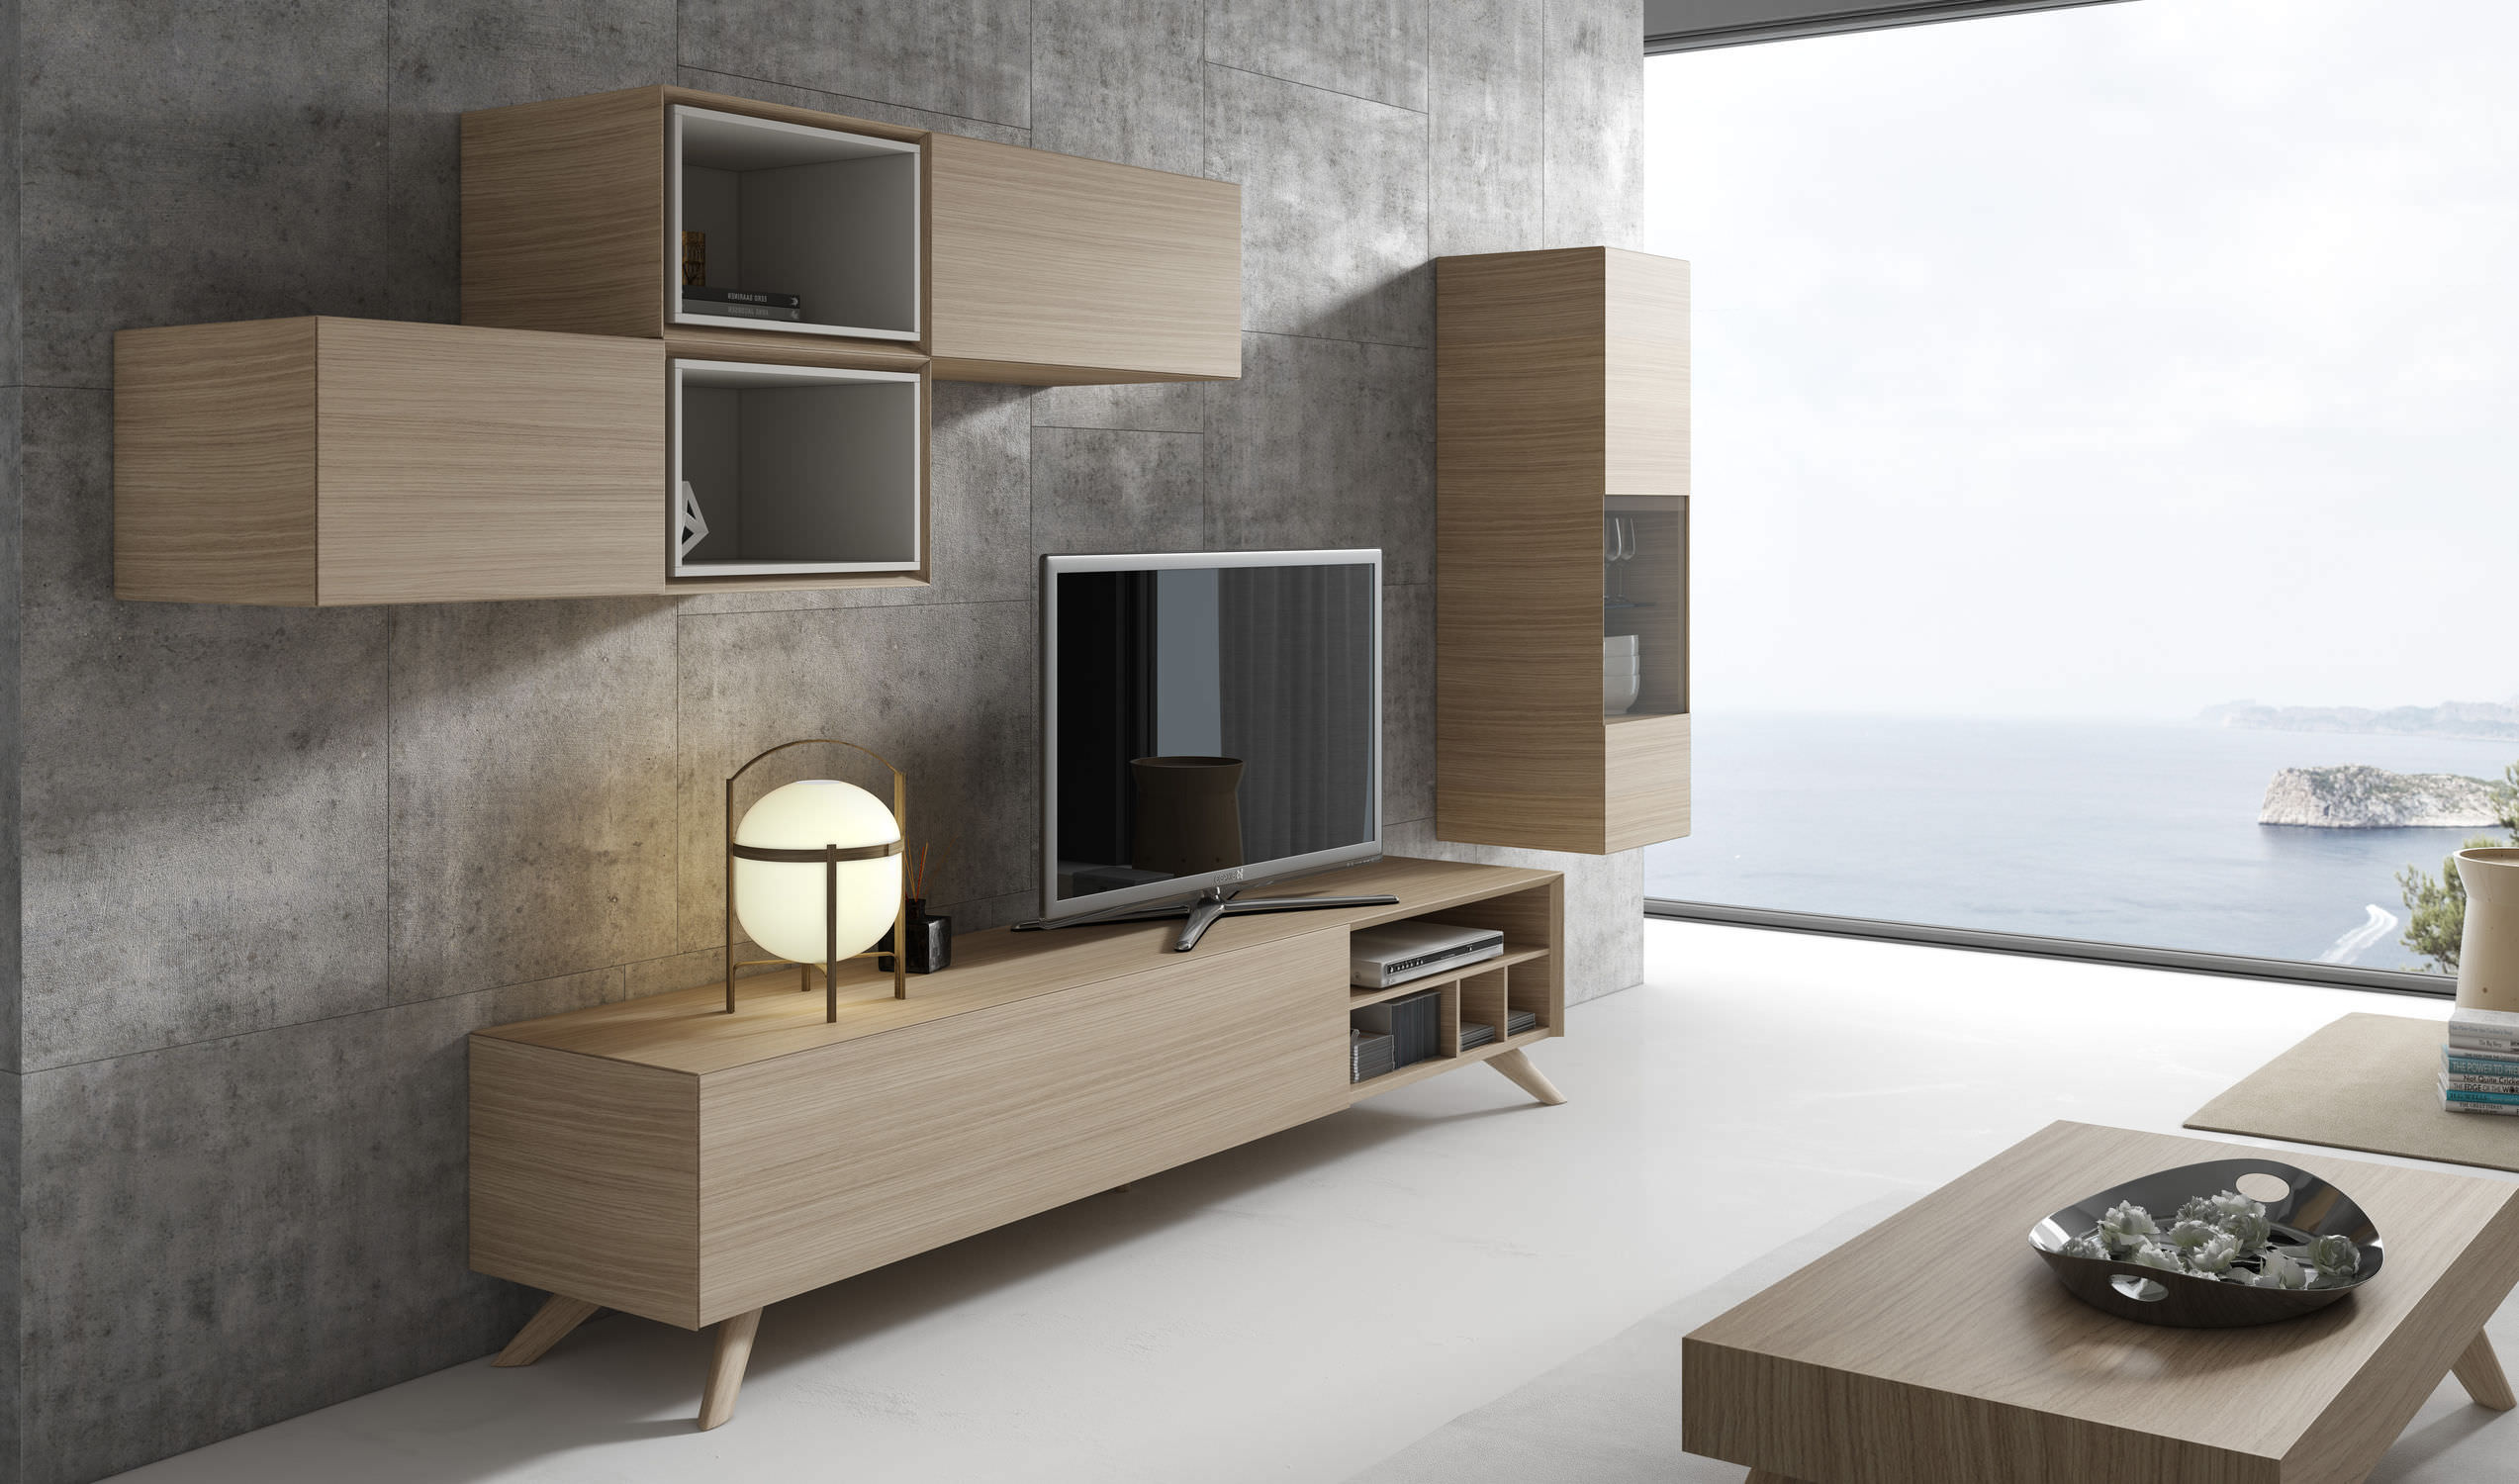 meuble de tele contemporain 5 id es de d coration int rieure french decor. Black Bedroom Furniture Sets. Home Design Ideas